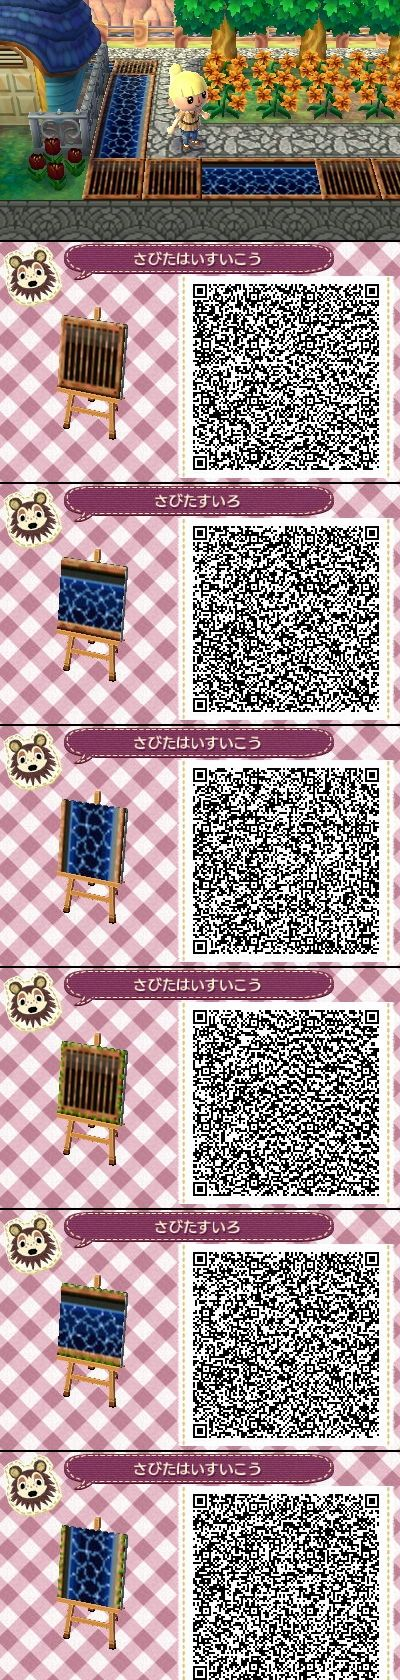 Animal crossing new leaf qr codes water animal crossing Boden qr codes animal crossing new leaf